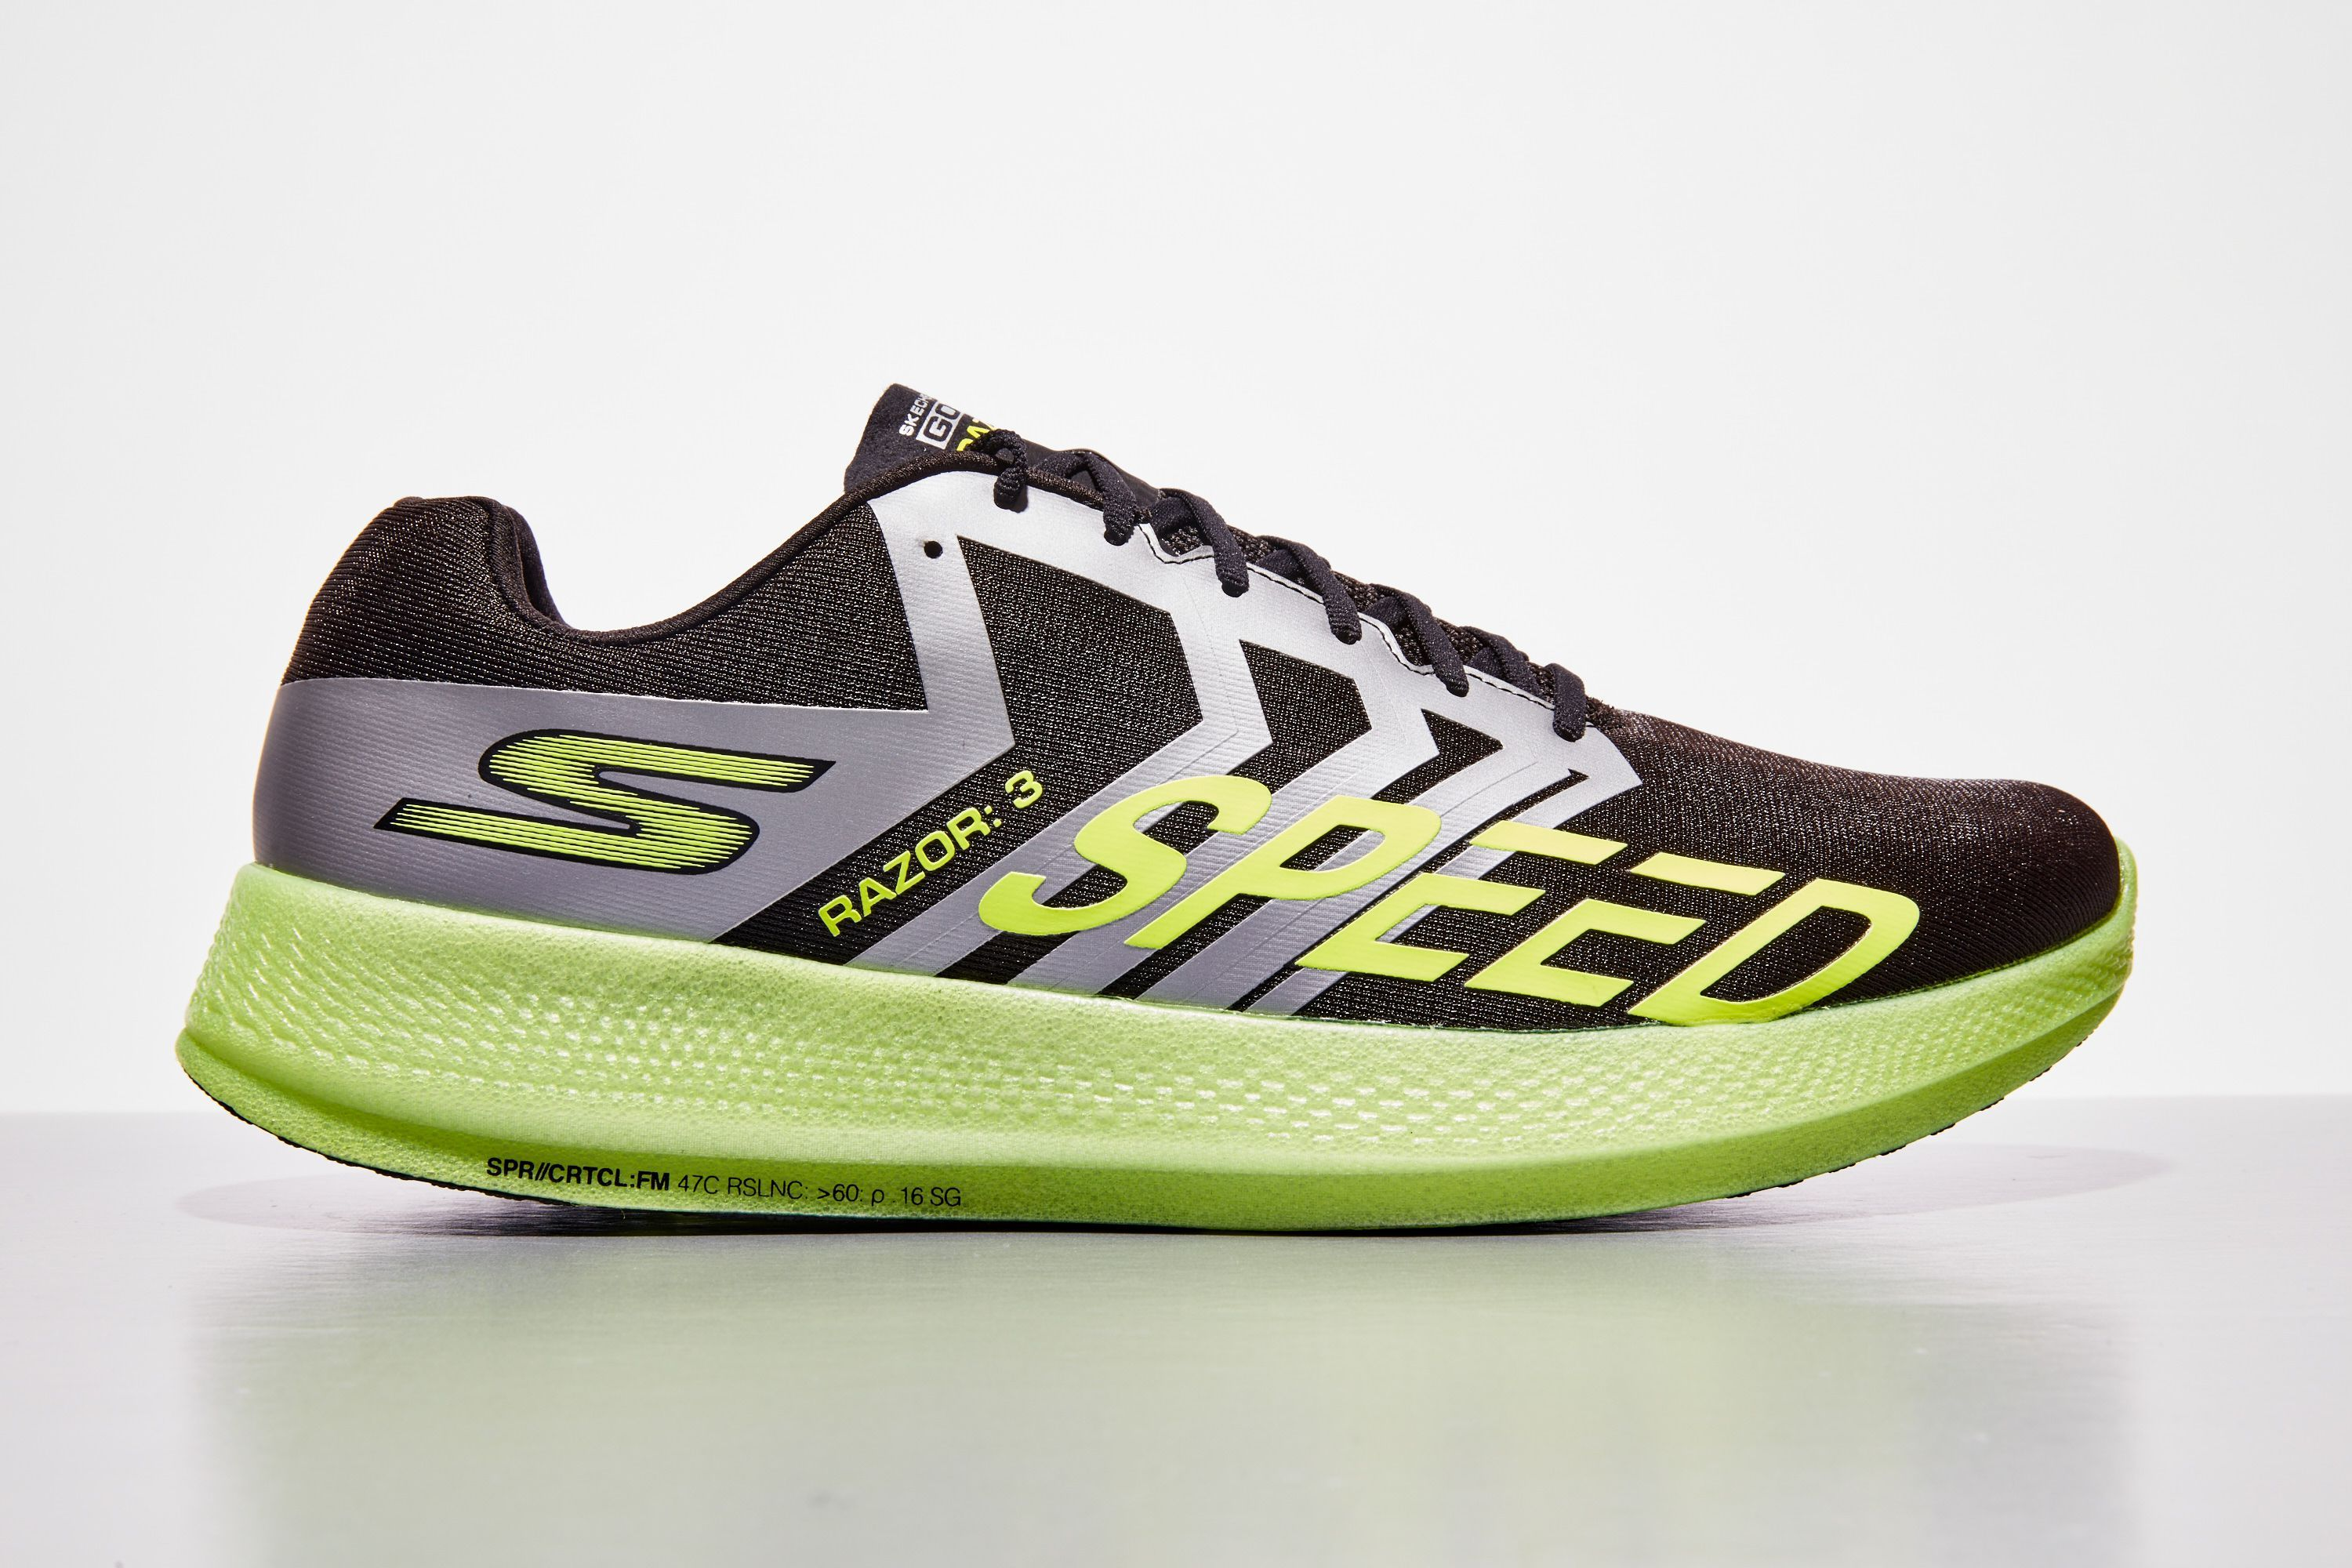 Skechers GOrun Razor 3 Hyper — Fast Racing Shoes